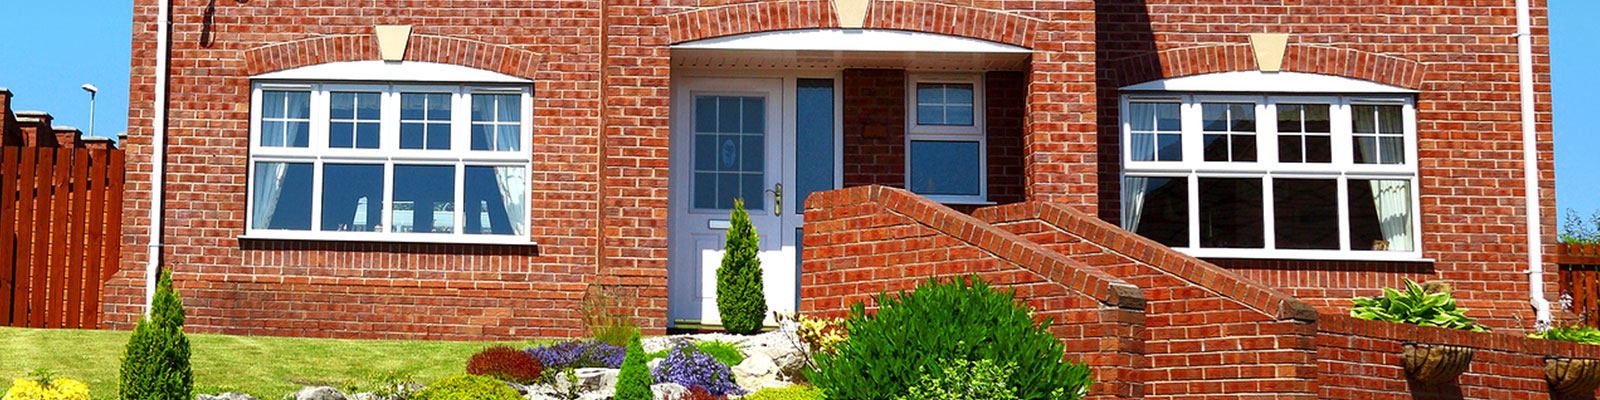 Home Owner Services